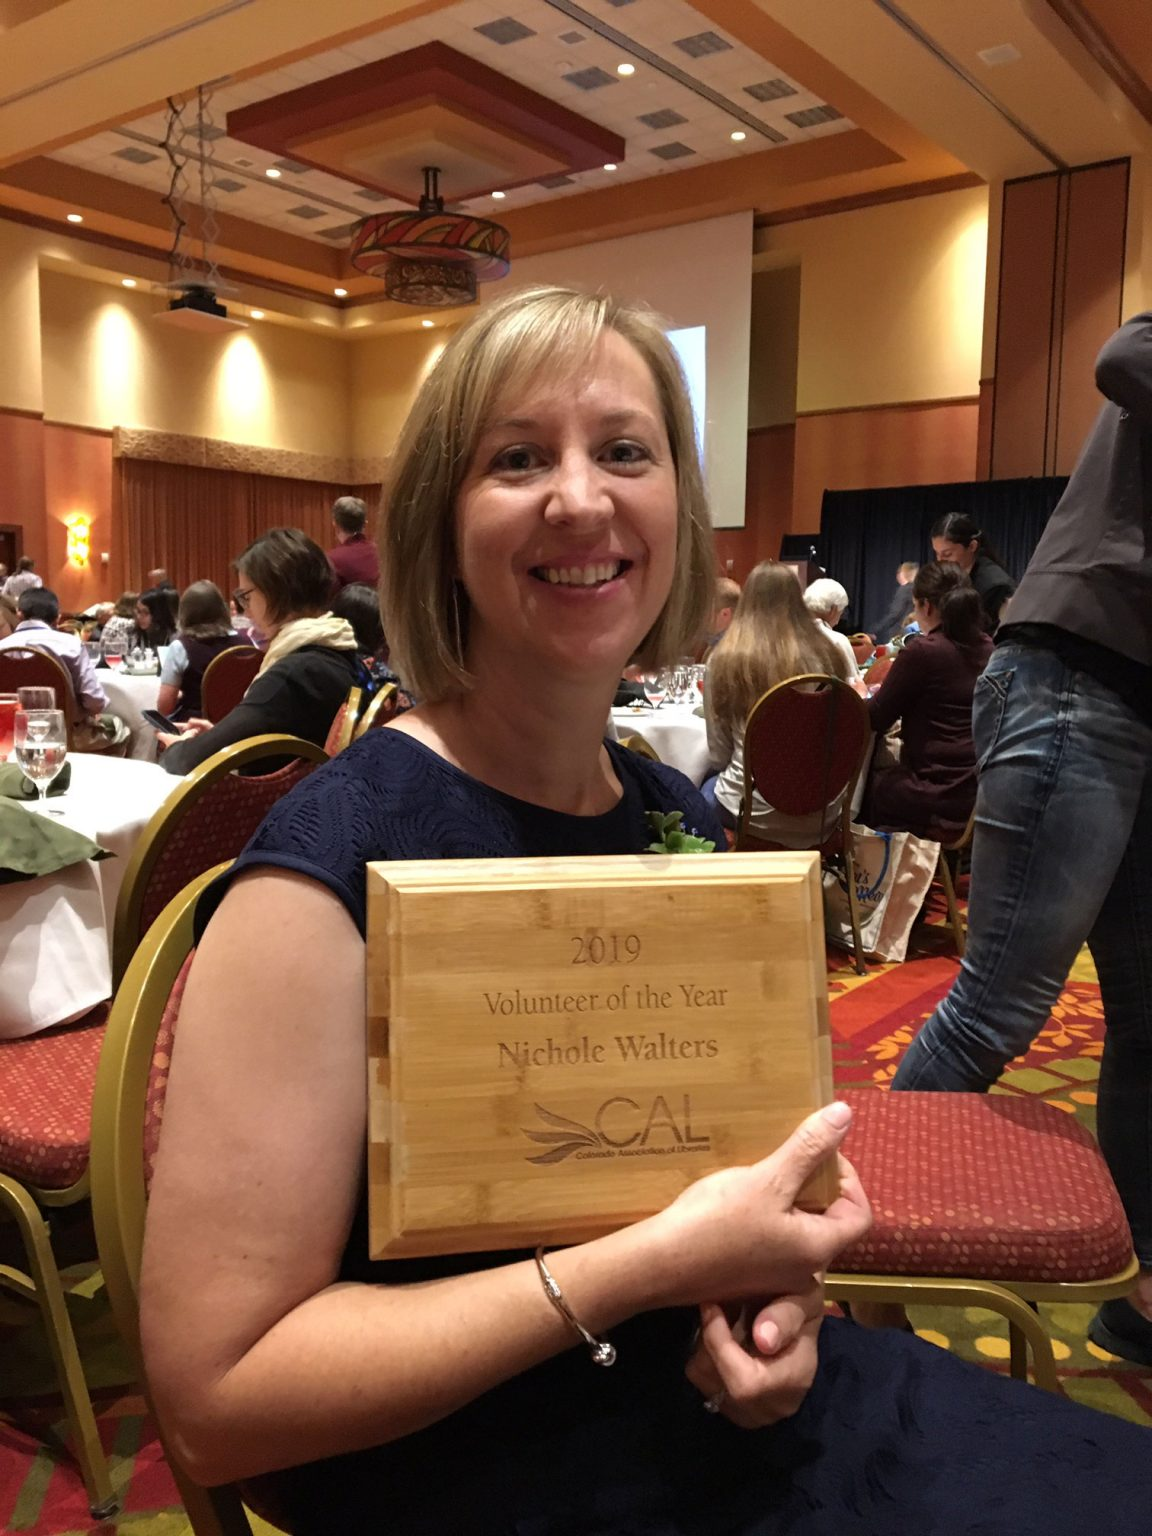 DCL volunteer Nichole Walters was honored as the Outstanding Library Volunteer during the annual awards luncheon at CALCON 2019.